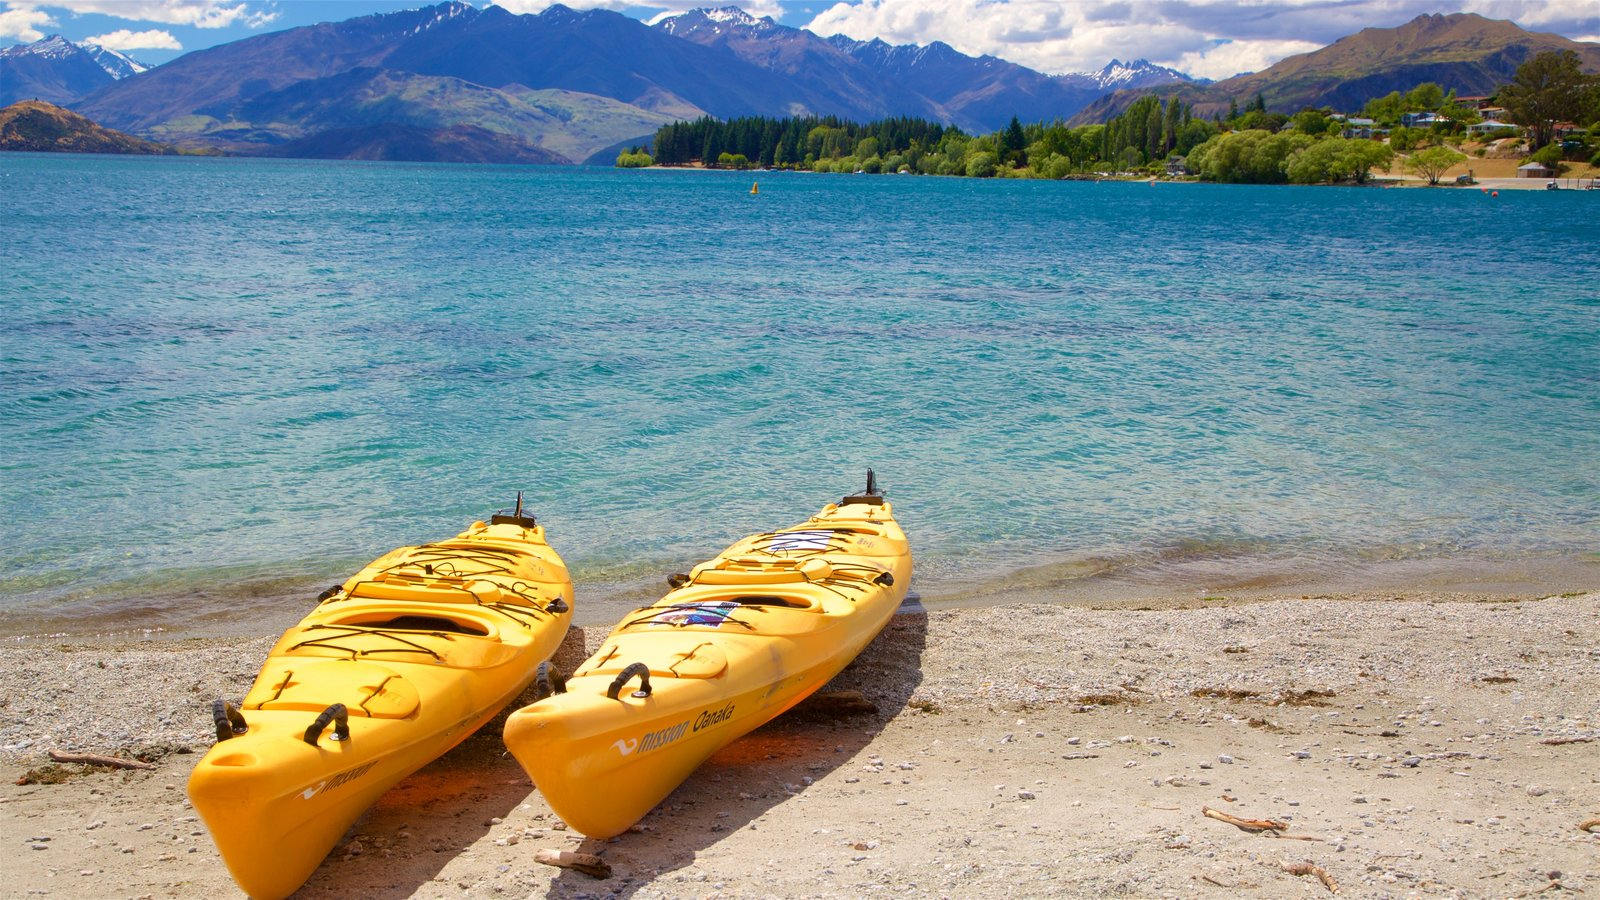 Lake Wanaka which includes mountains, kayaking or canoeing and a lake or waterhole